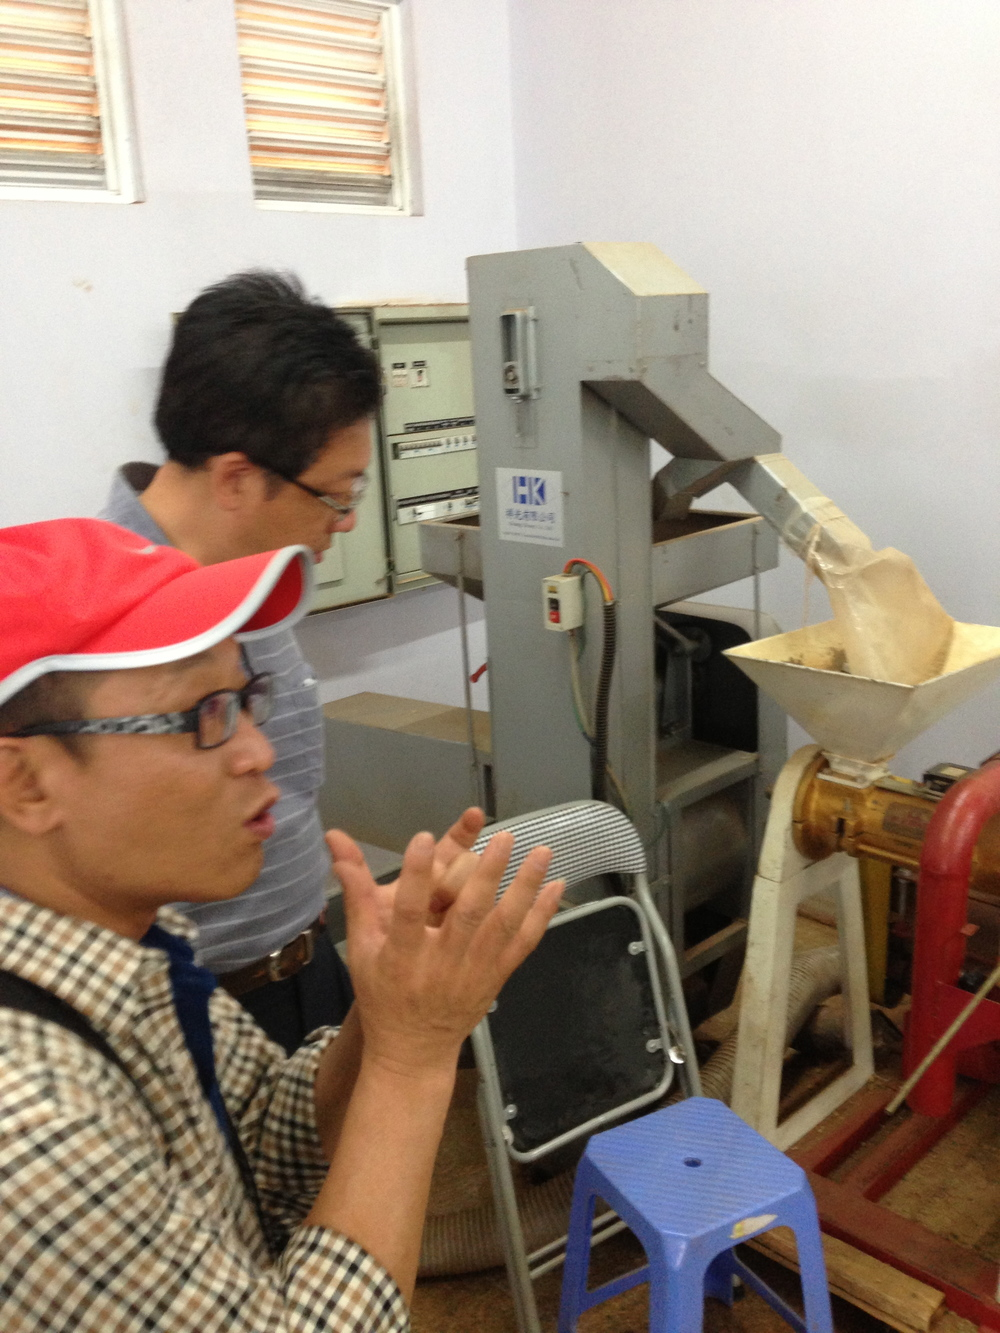 Yue-Wen and Kuo-Kuang with the Dry Hulling Machine and modified Polisher.